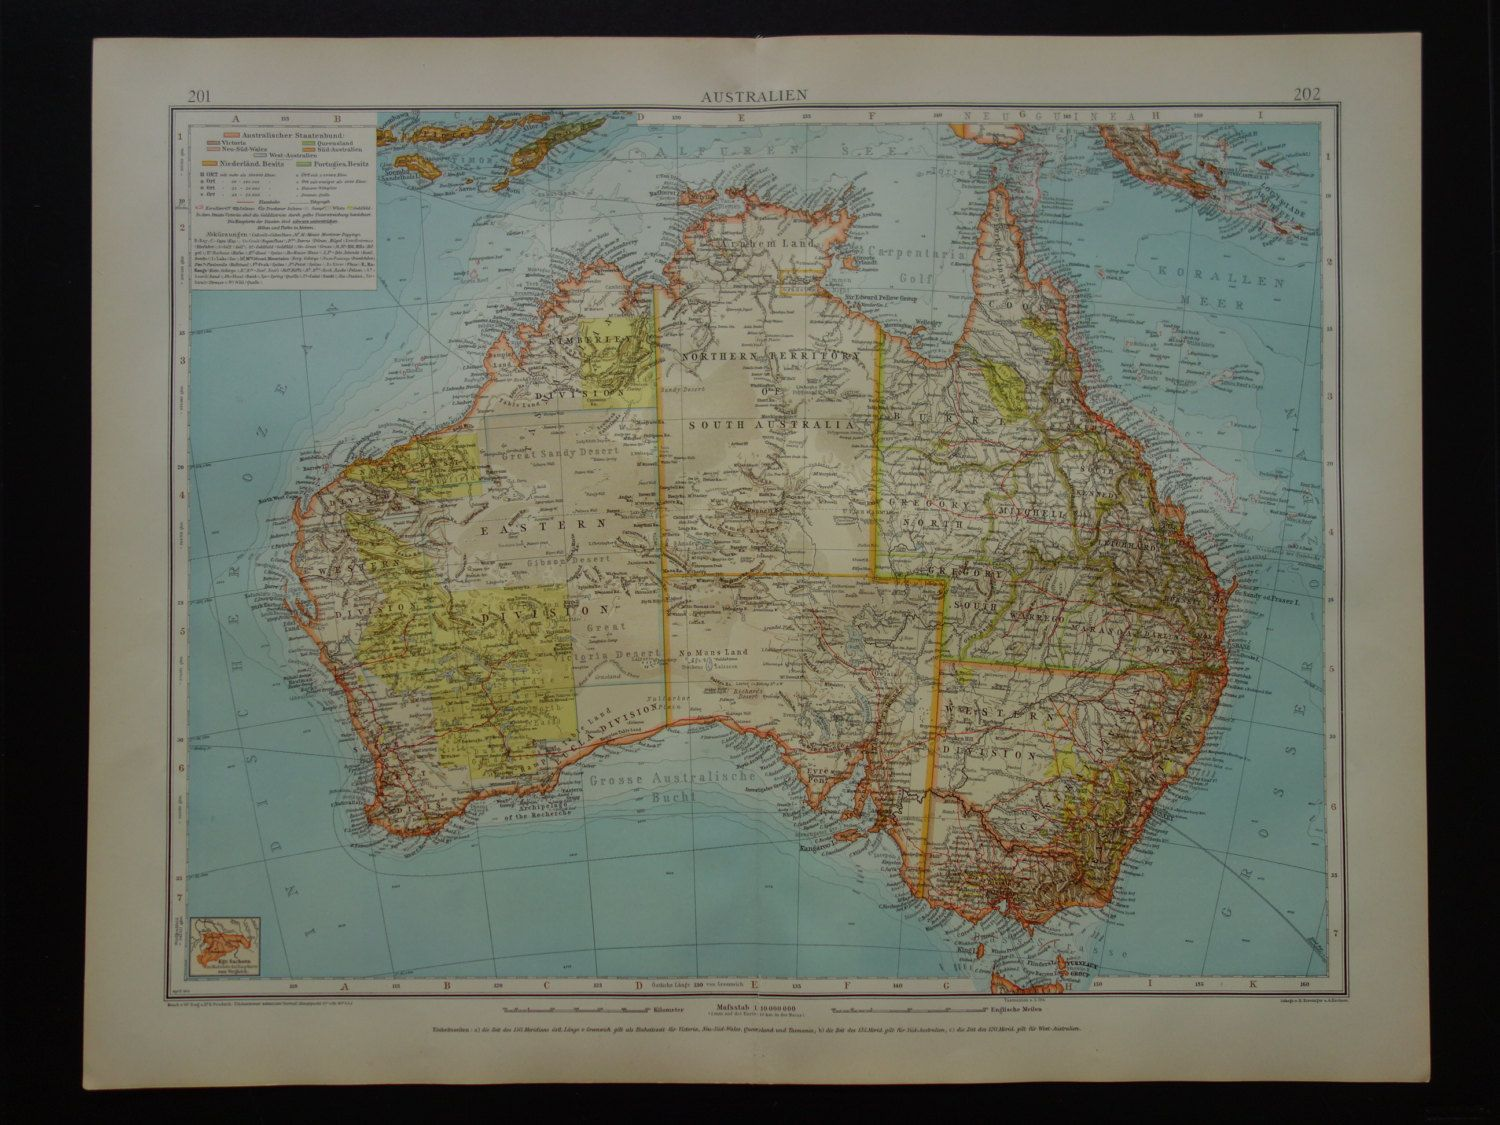 1910 antique large map of australia beautiful old detailed big print about australie perth